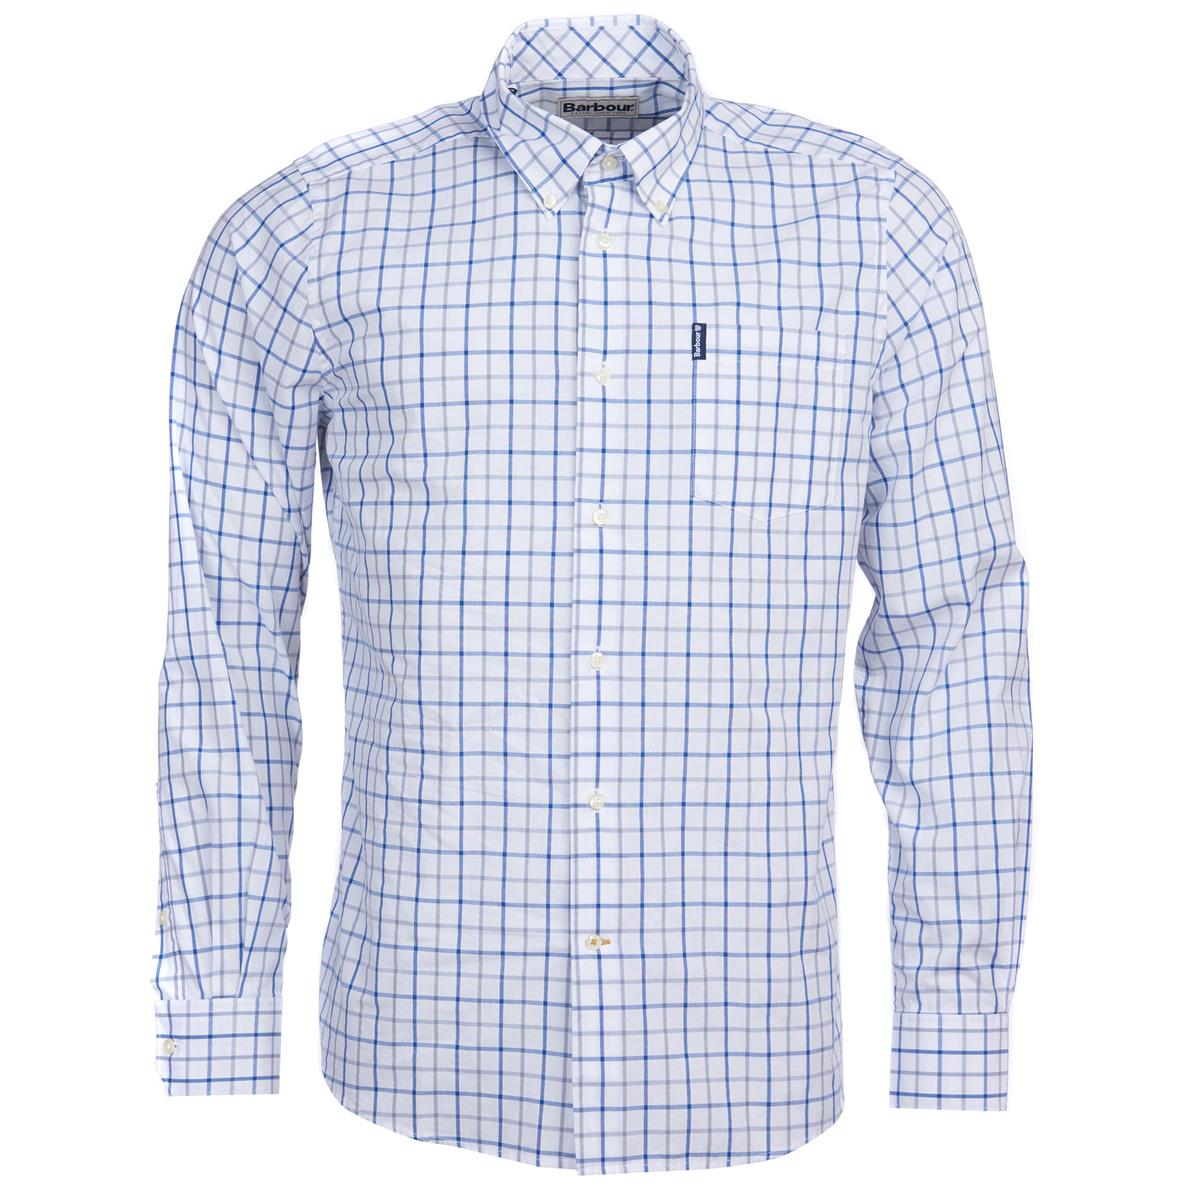 Men's Tops Barbour Tattersall 13 Tailored Shirt Mid Blue Small